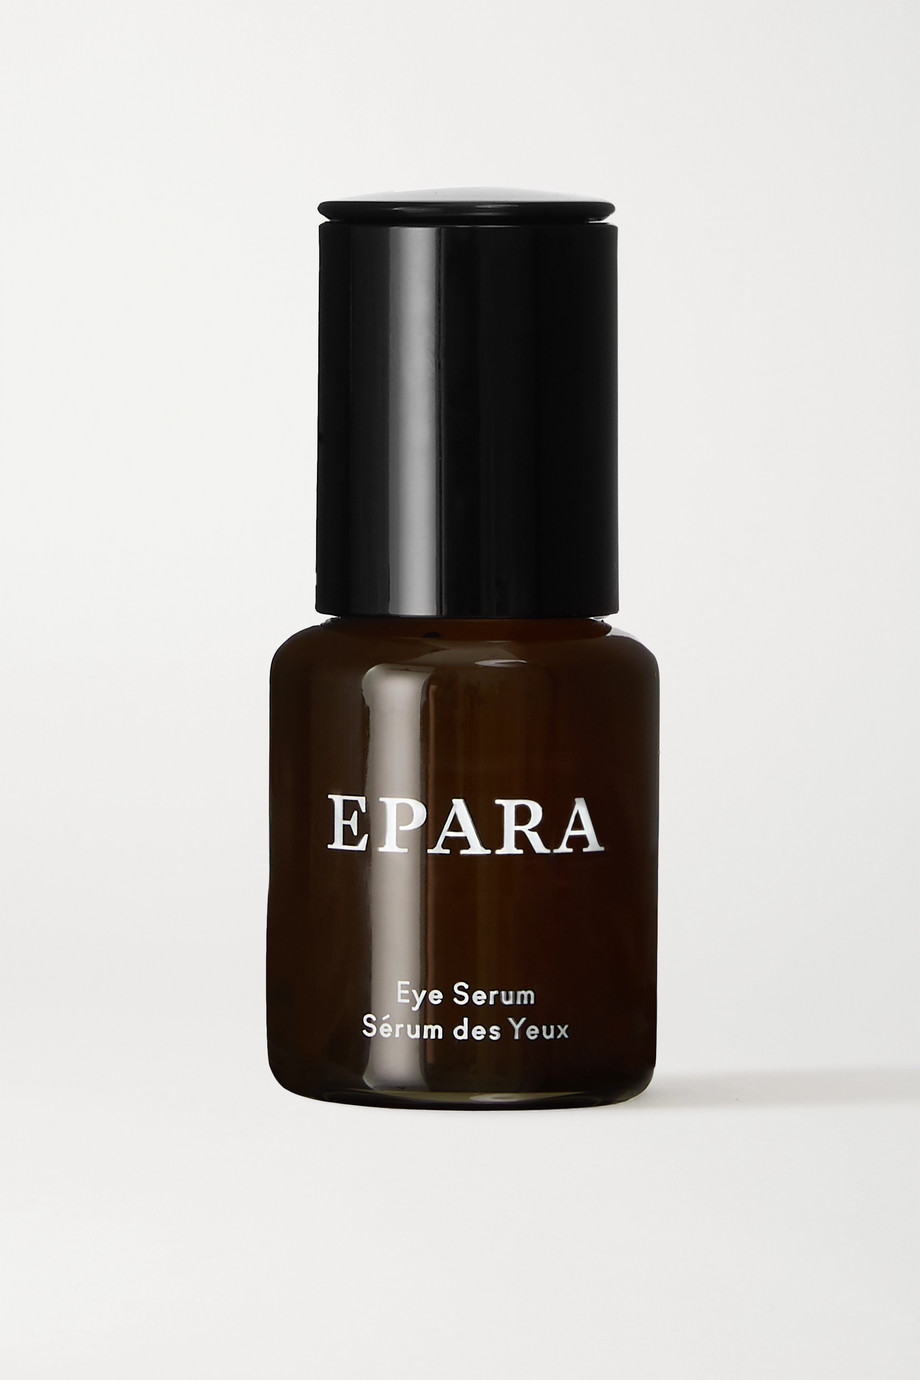 Epara Eye Serum, 15 ml – Augenserum